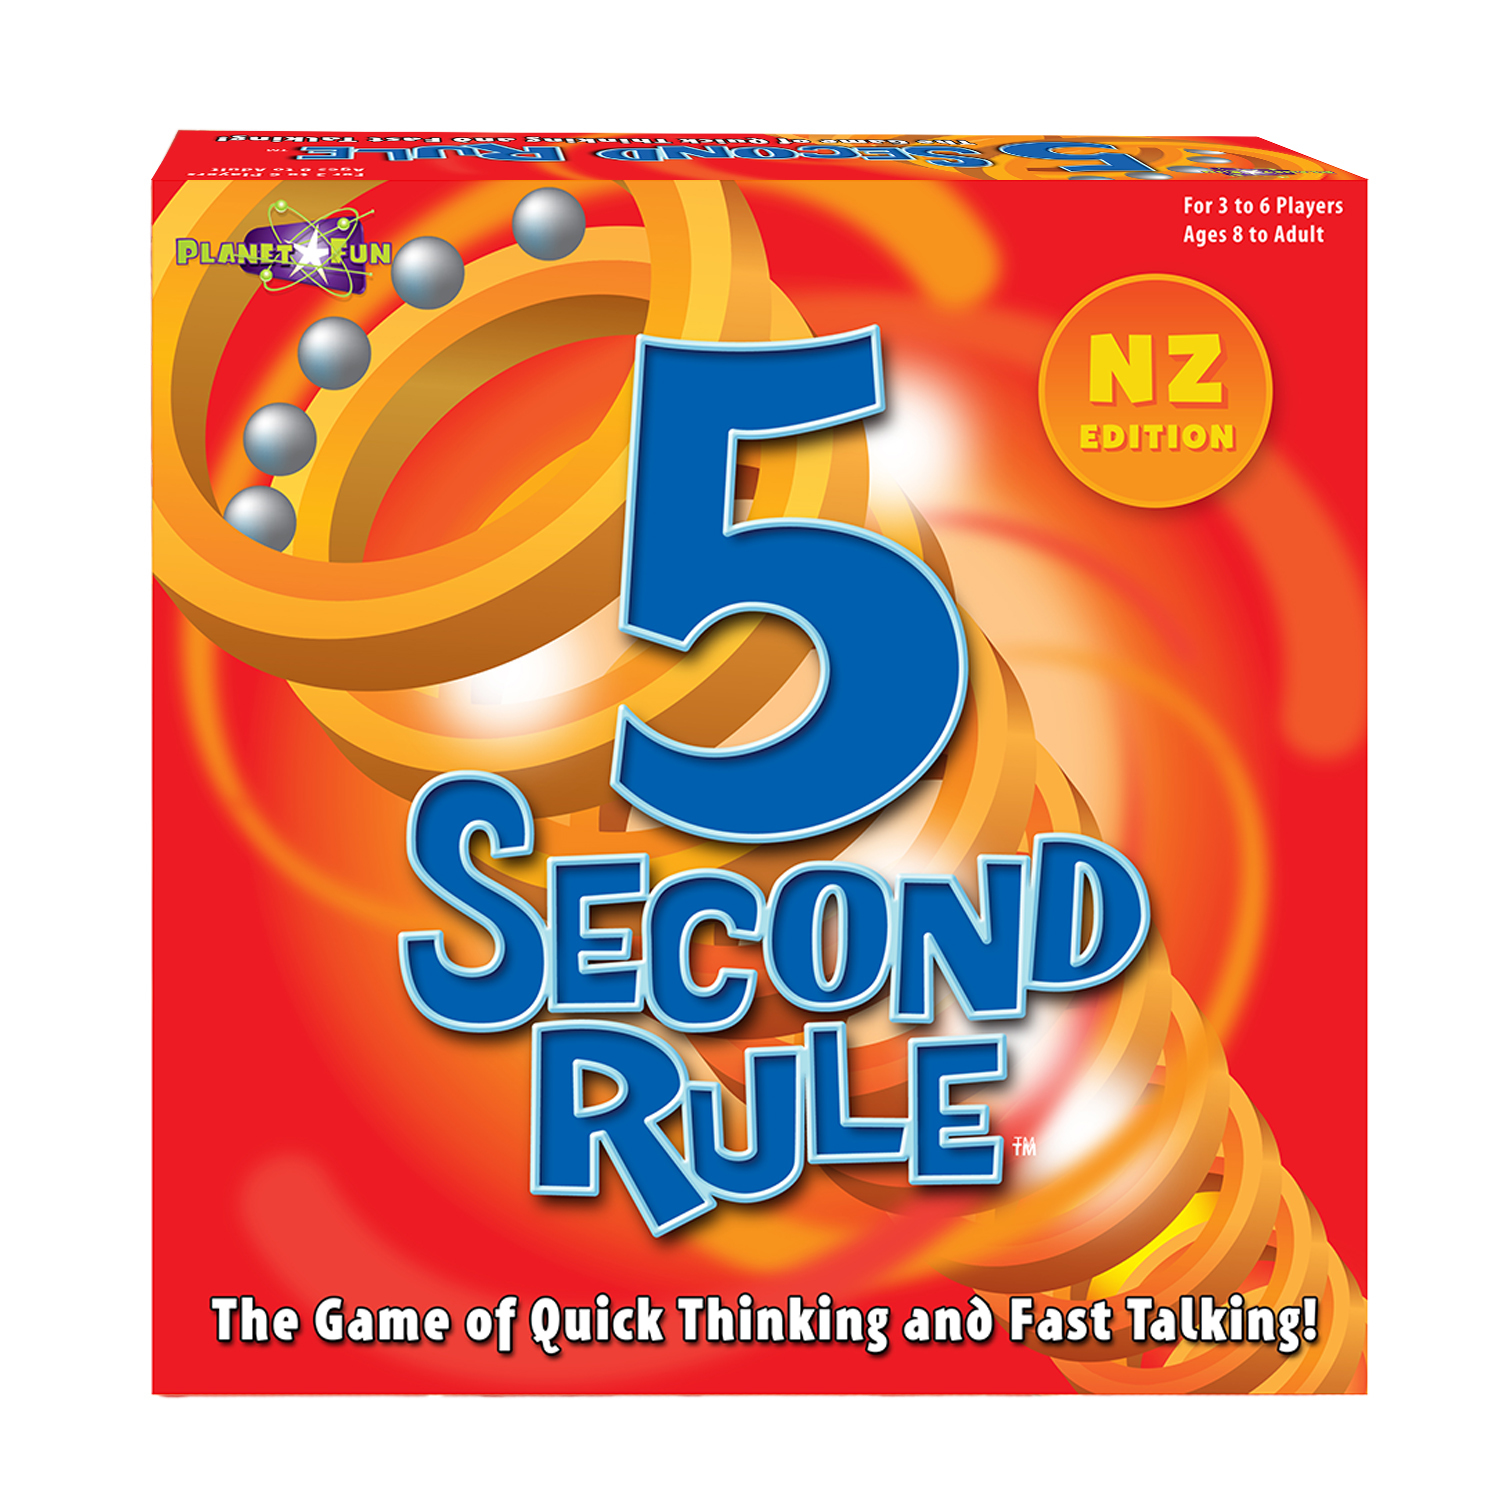 5 Second Rule - Trivia Game (NZ Edition) image